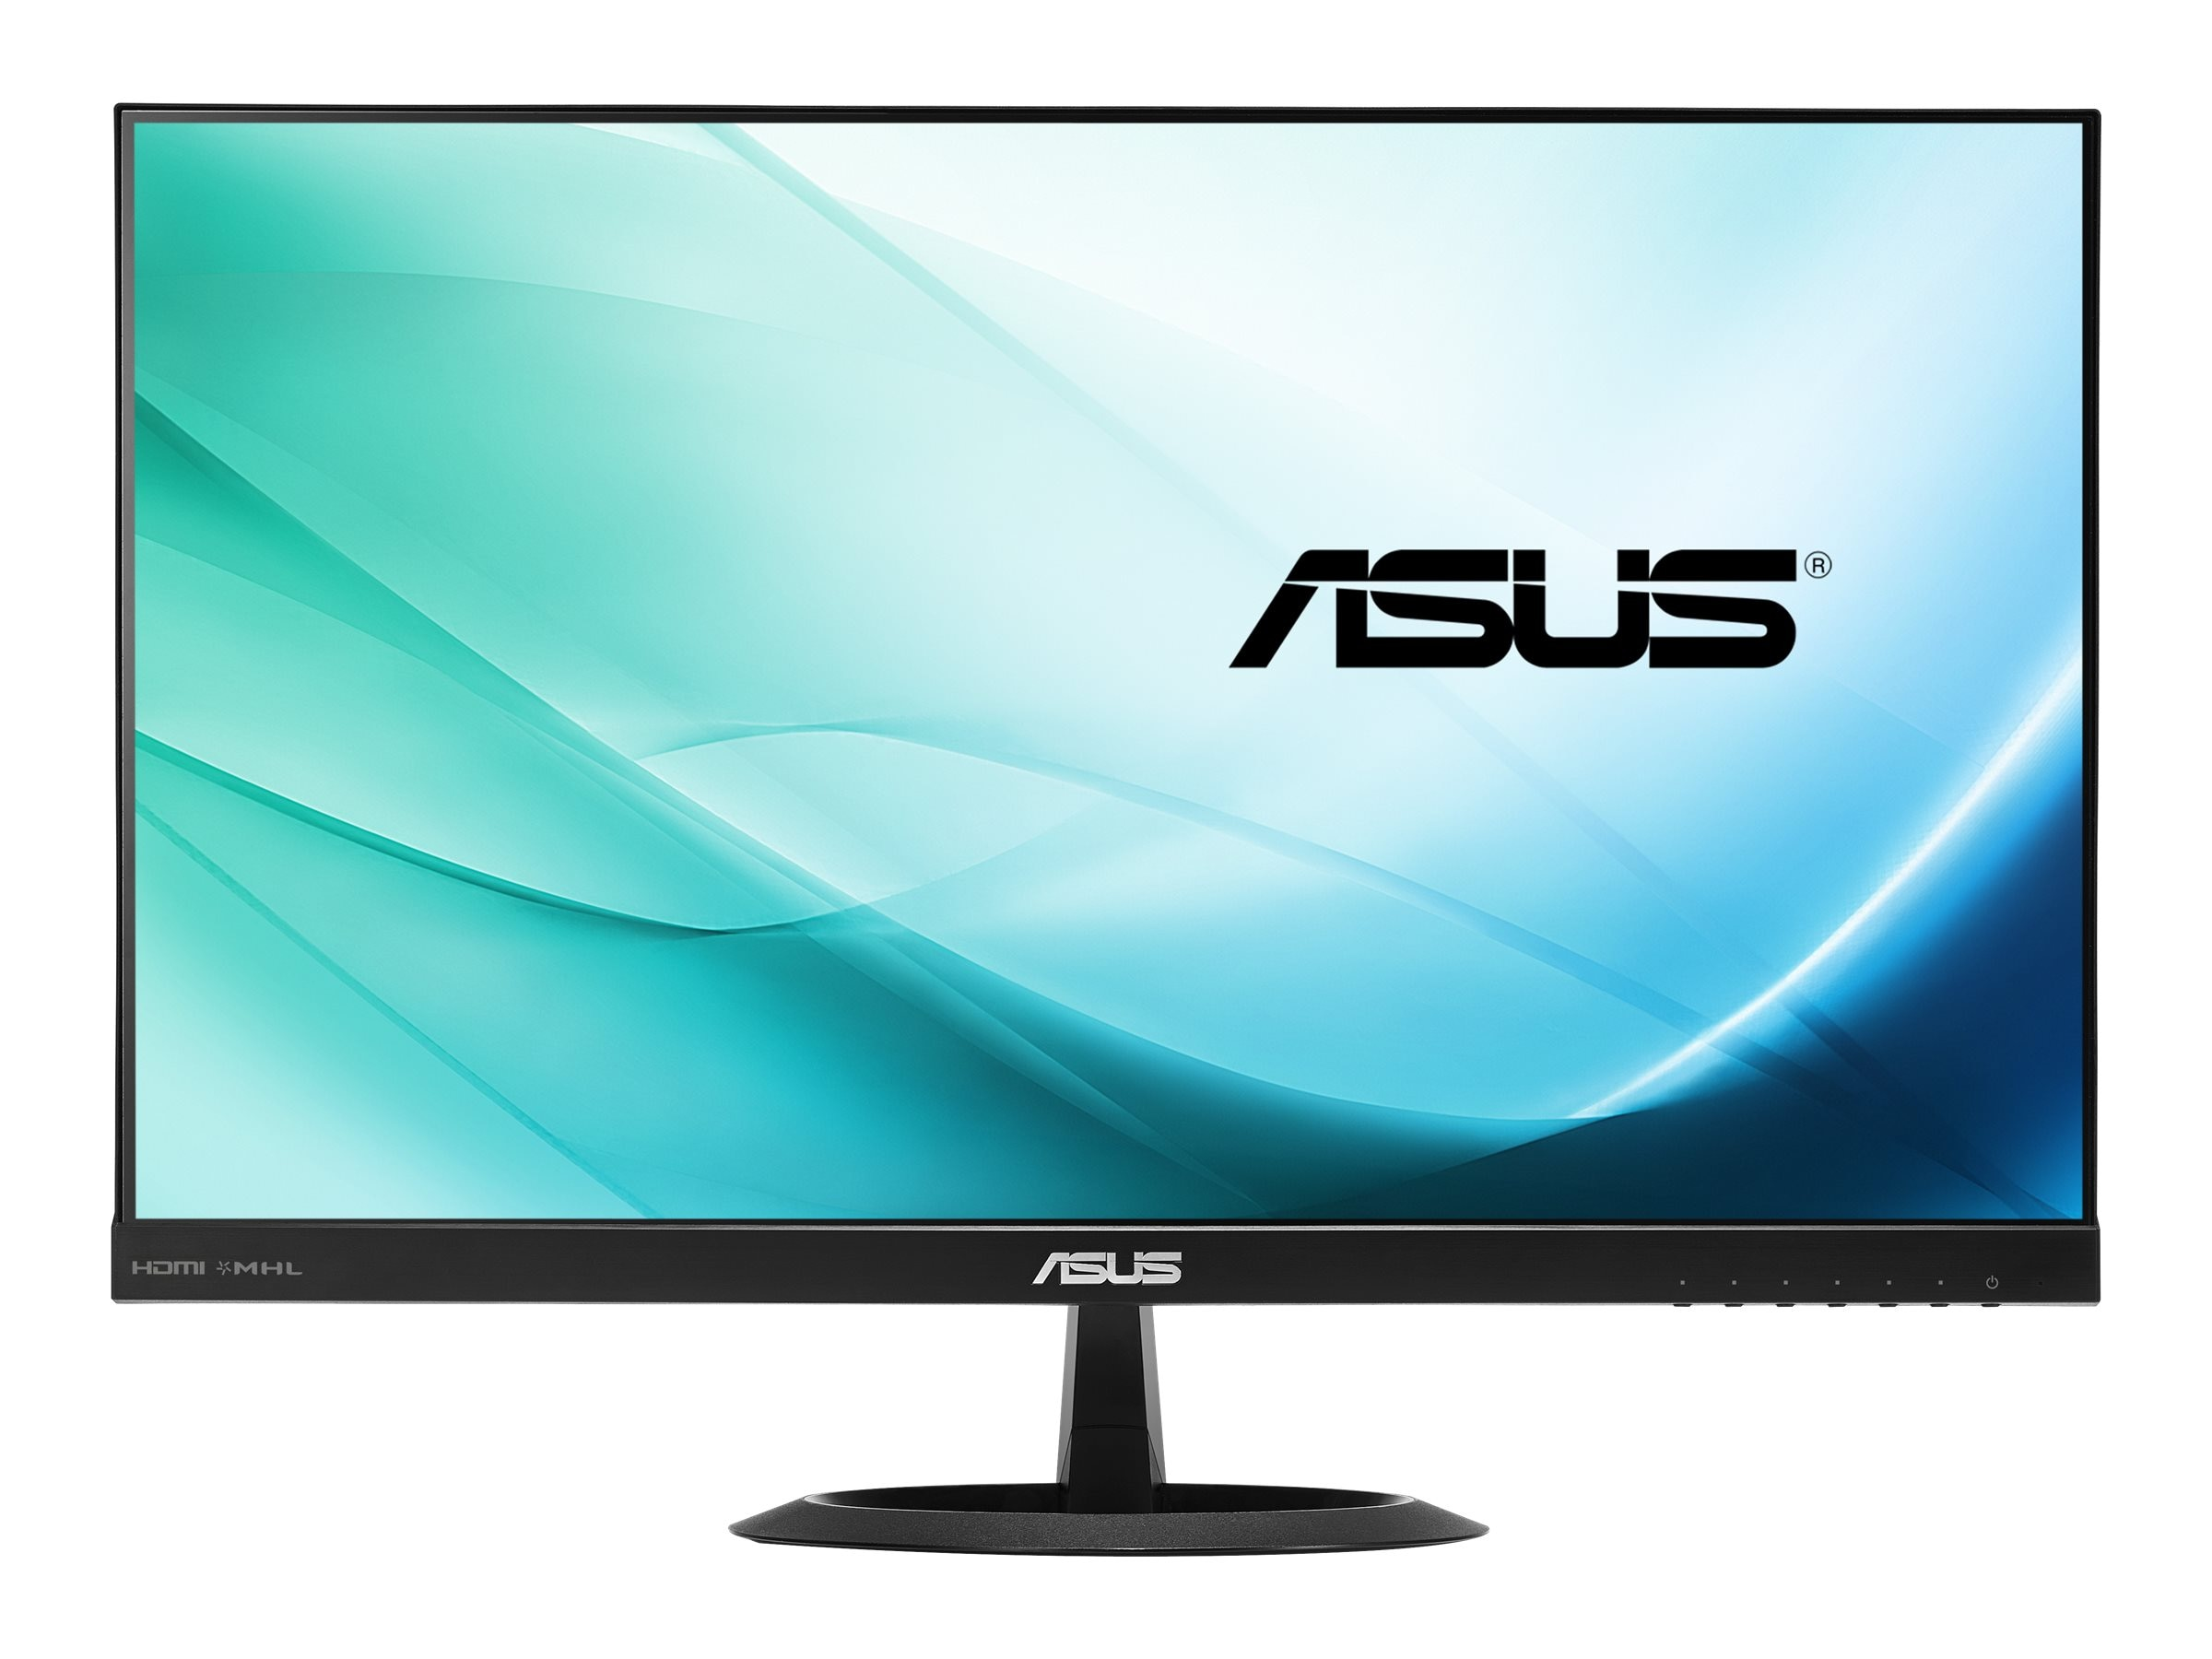 Asus 23.8 VX24AH WQHD LED-LCD Monitor, Black